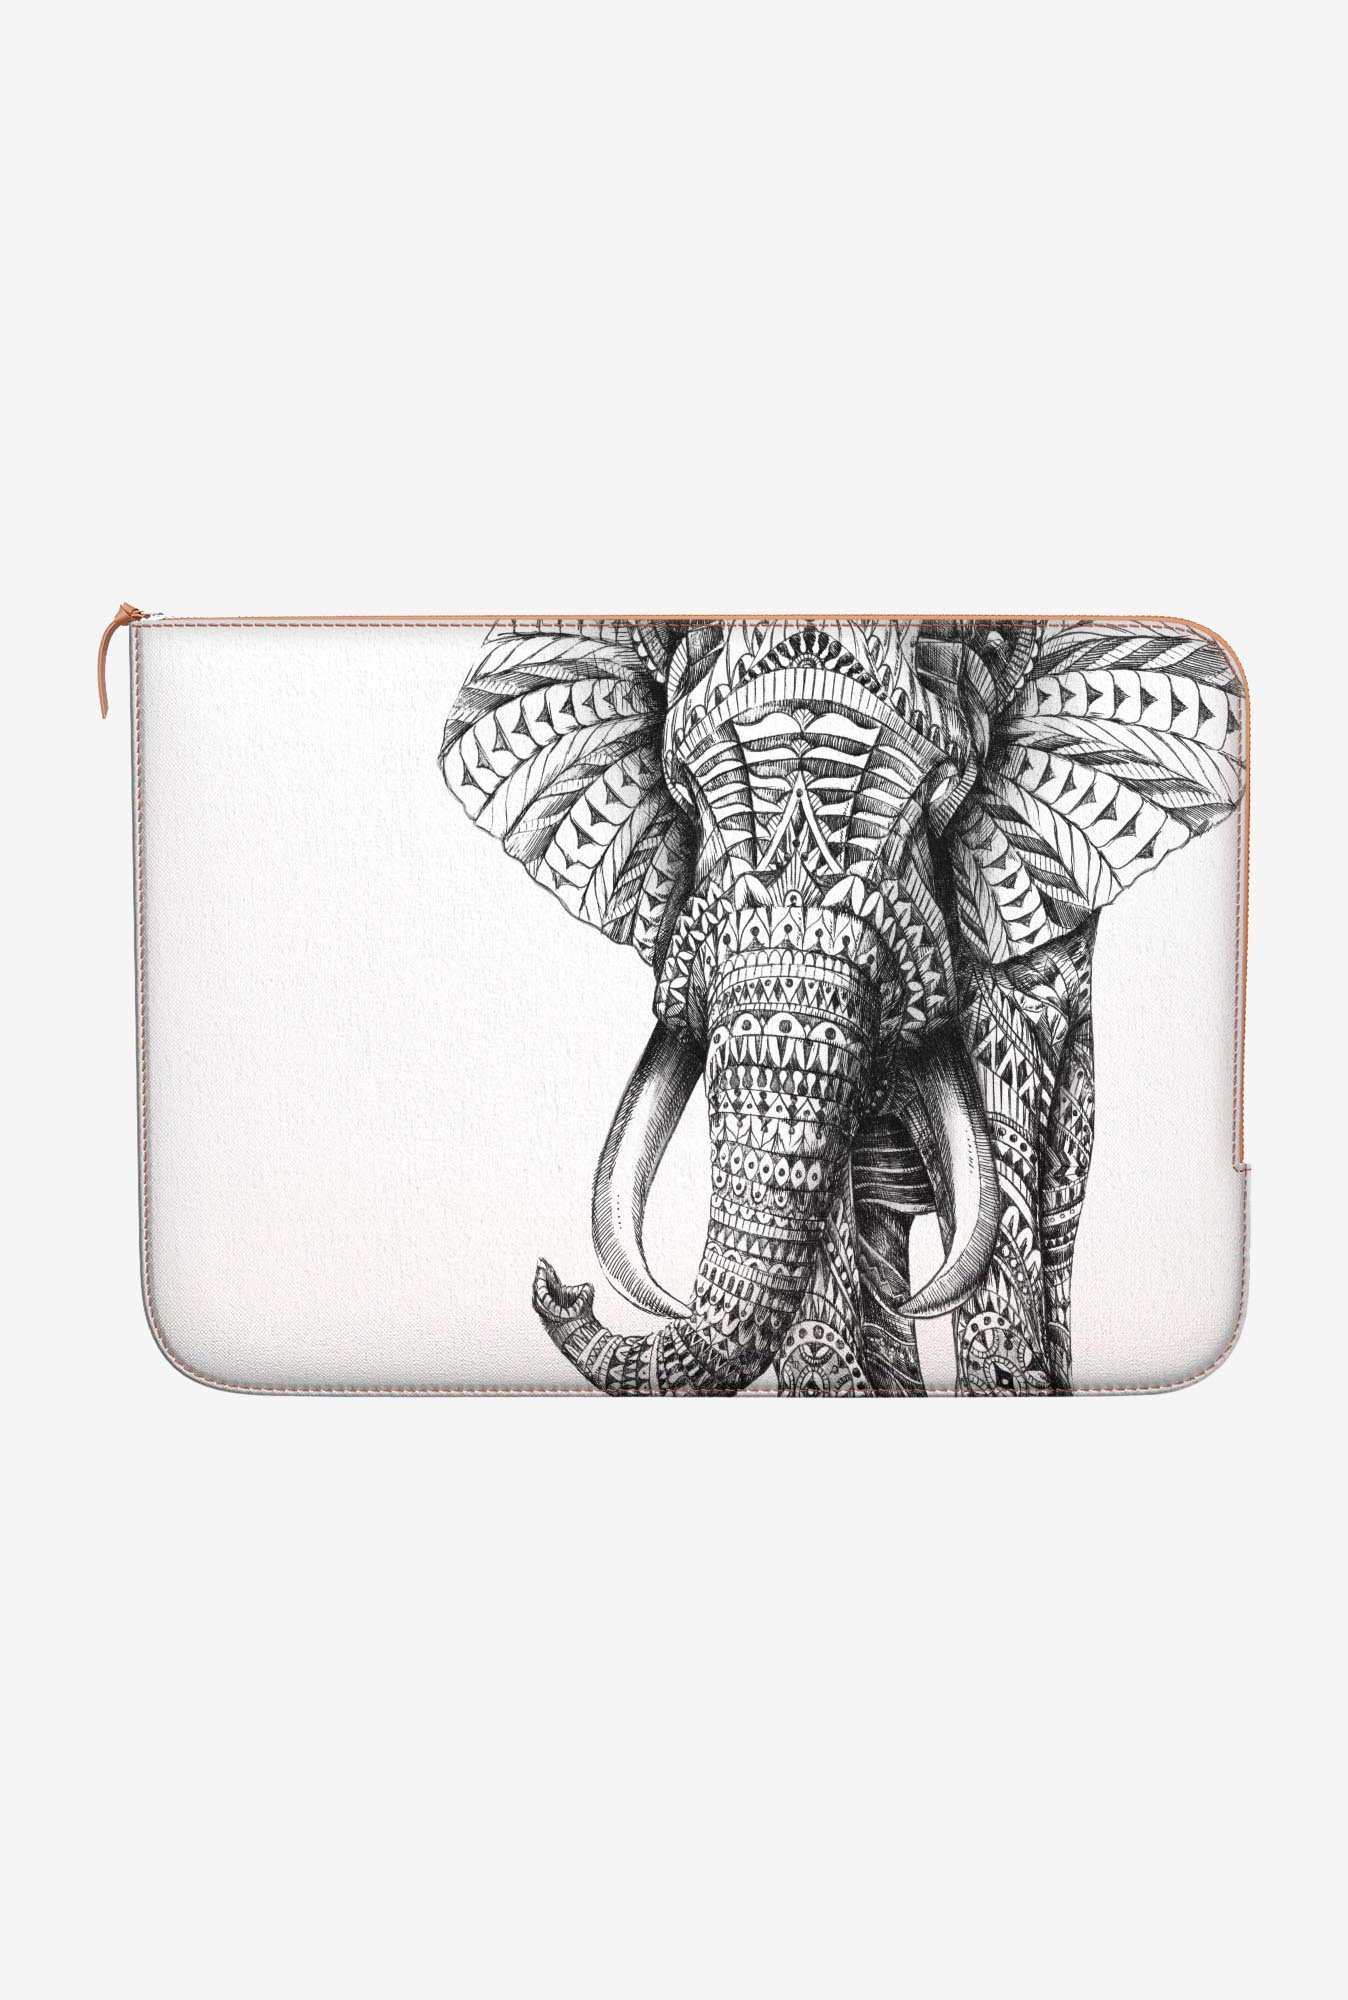 DailyObjects Ornate Elephant MacBook Air 13 Zippered Sleeve